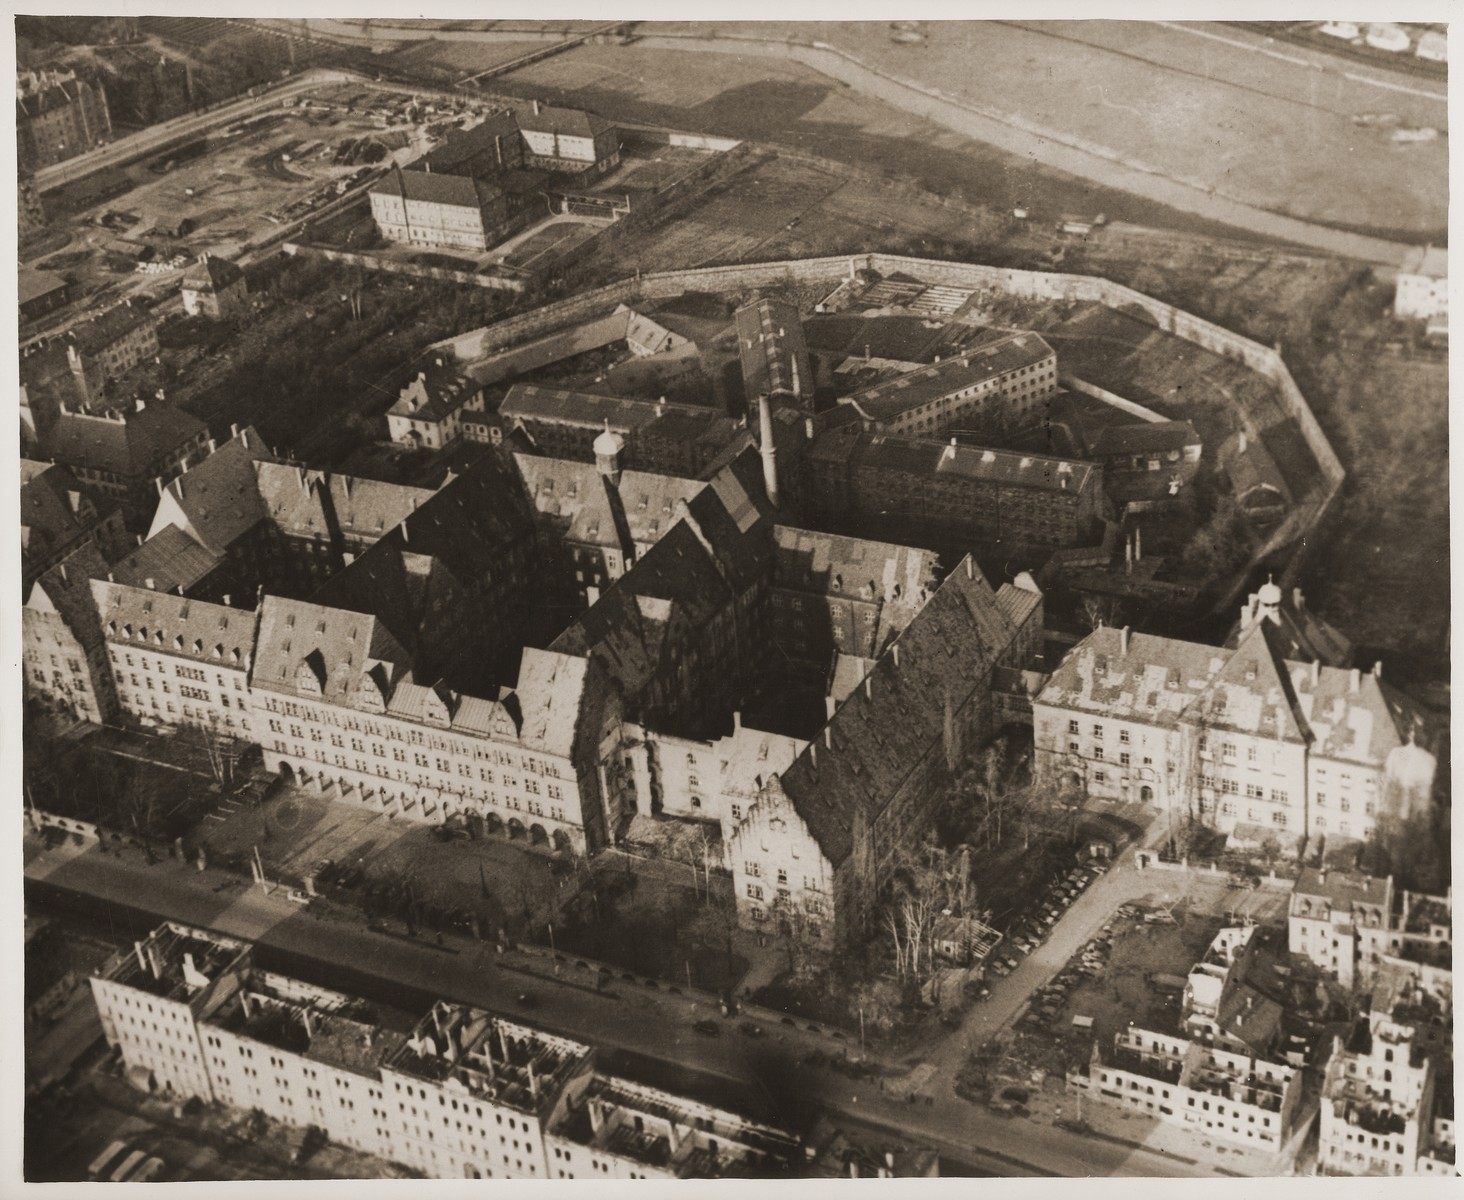 Aerial view of the Nuremberg Palace of Justice and prison, where the war crimes trial of the International Military Tribunal was held and its defendants incarcerated.    In the foreground is the Palace of Justice.  The structure on the right that is connected to the the main building by a passageway, is where the actual courtroom is located.  The main part of the Palace of Justice houses the offices of those working on the IMT.  In the background are the four wings of the Nuremberg prison.  The IMT defendants are housed in the far right wing; the witnesses in the left wing; and other prisoners in the two center wings.